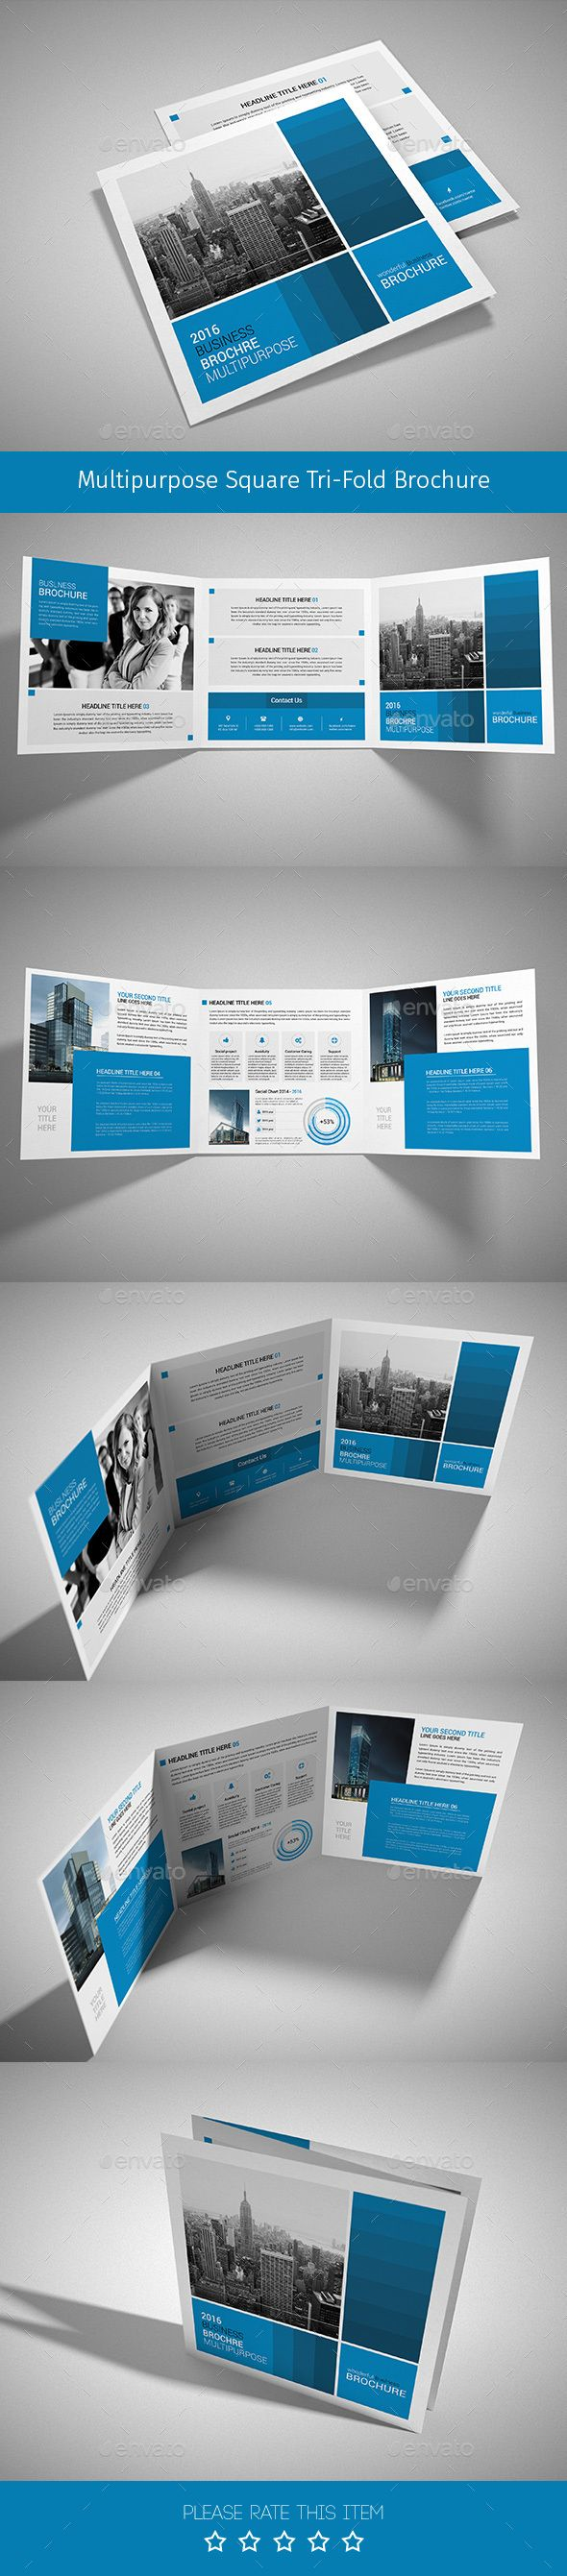 Corporate Tri-fold Square Brochure Template PSD. Download here: http://graphicriver.net/item/corporate-trifold-square-brochure-07/15013664?ref=ksioks